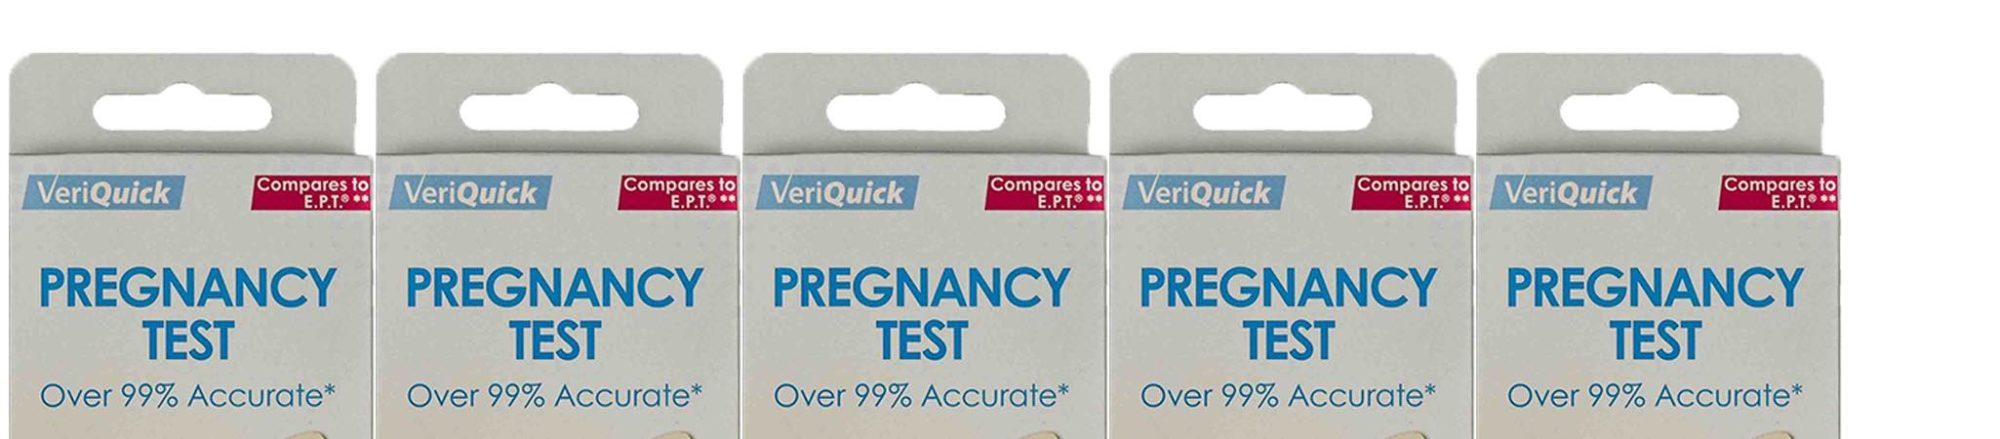 VeriQuick Pregnancy Test mIU